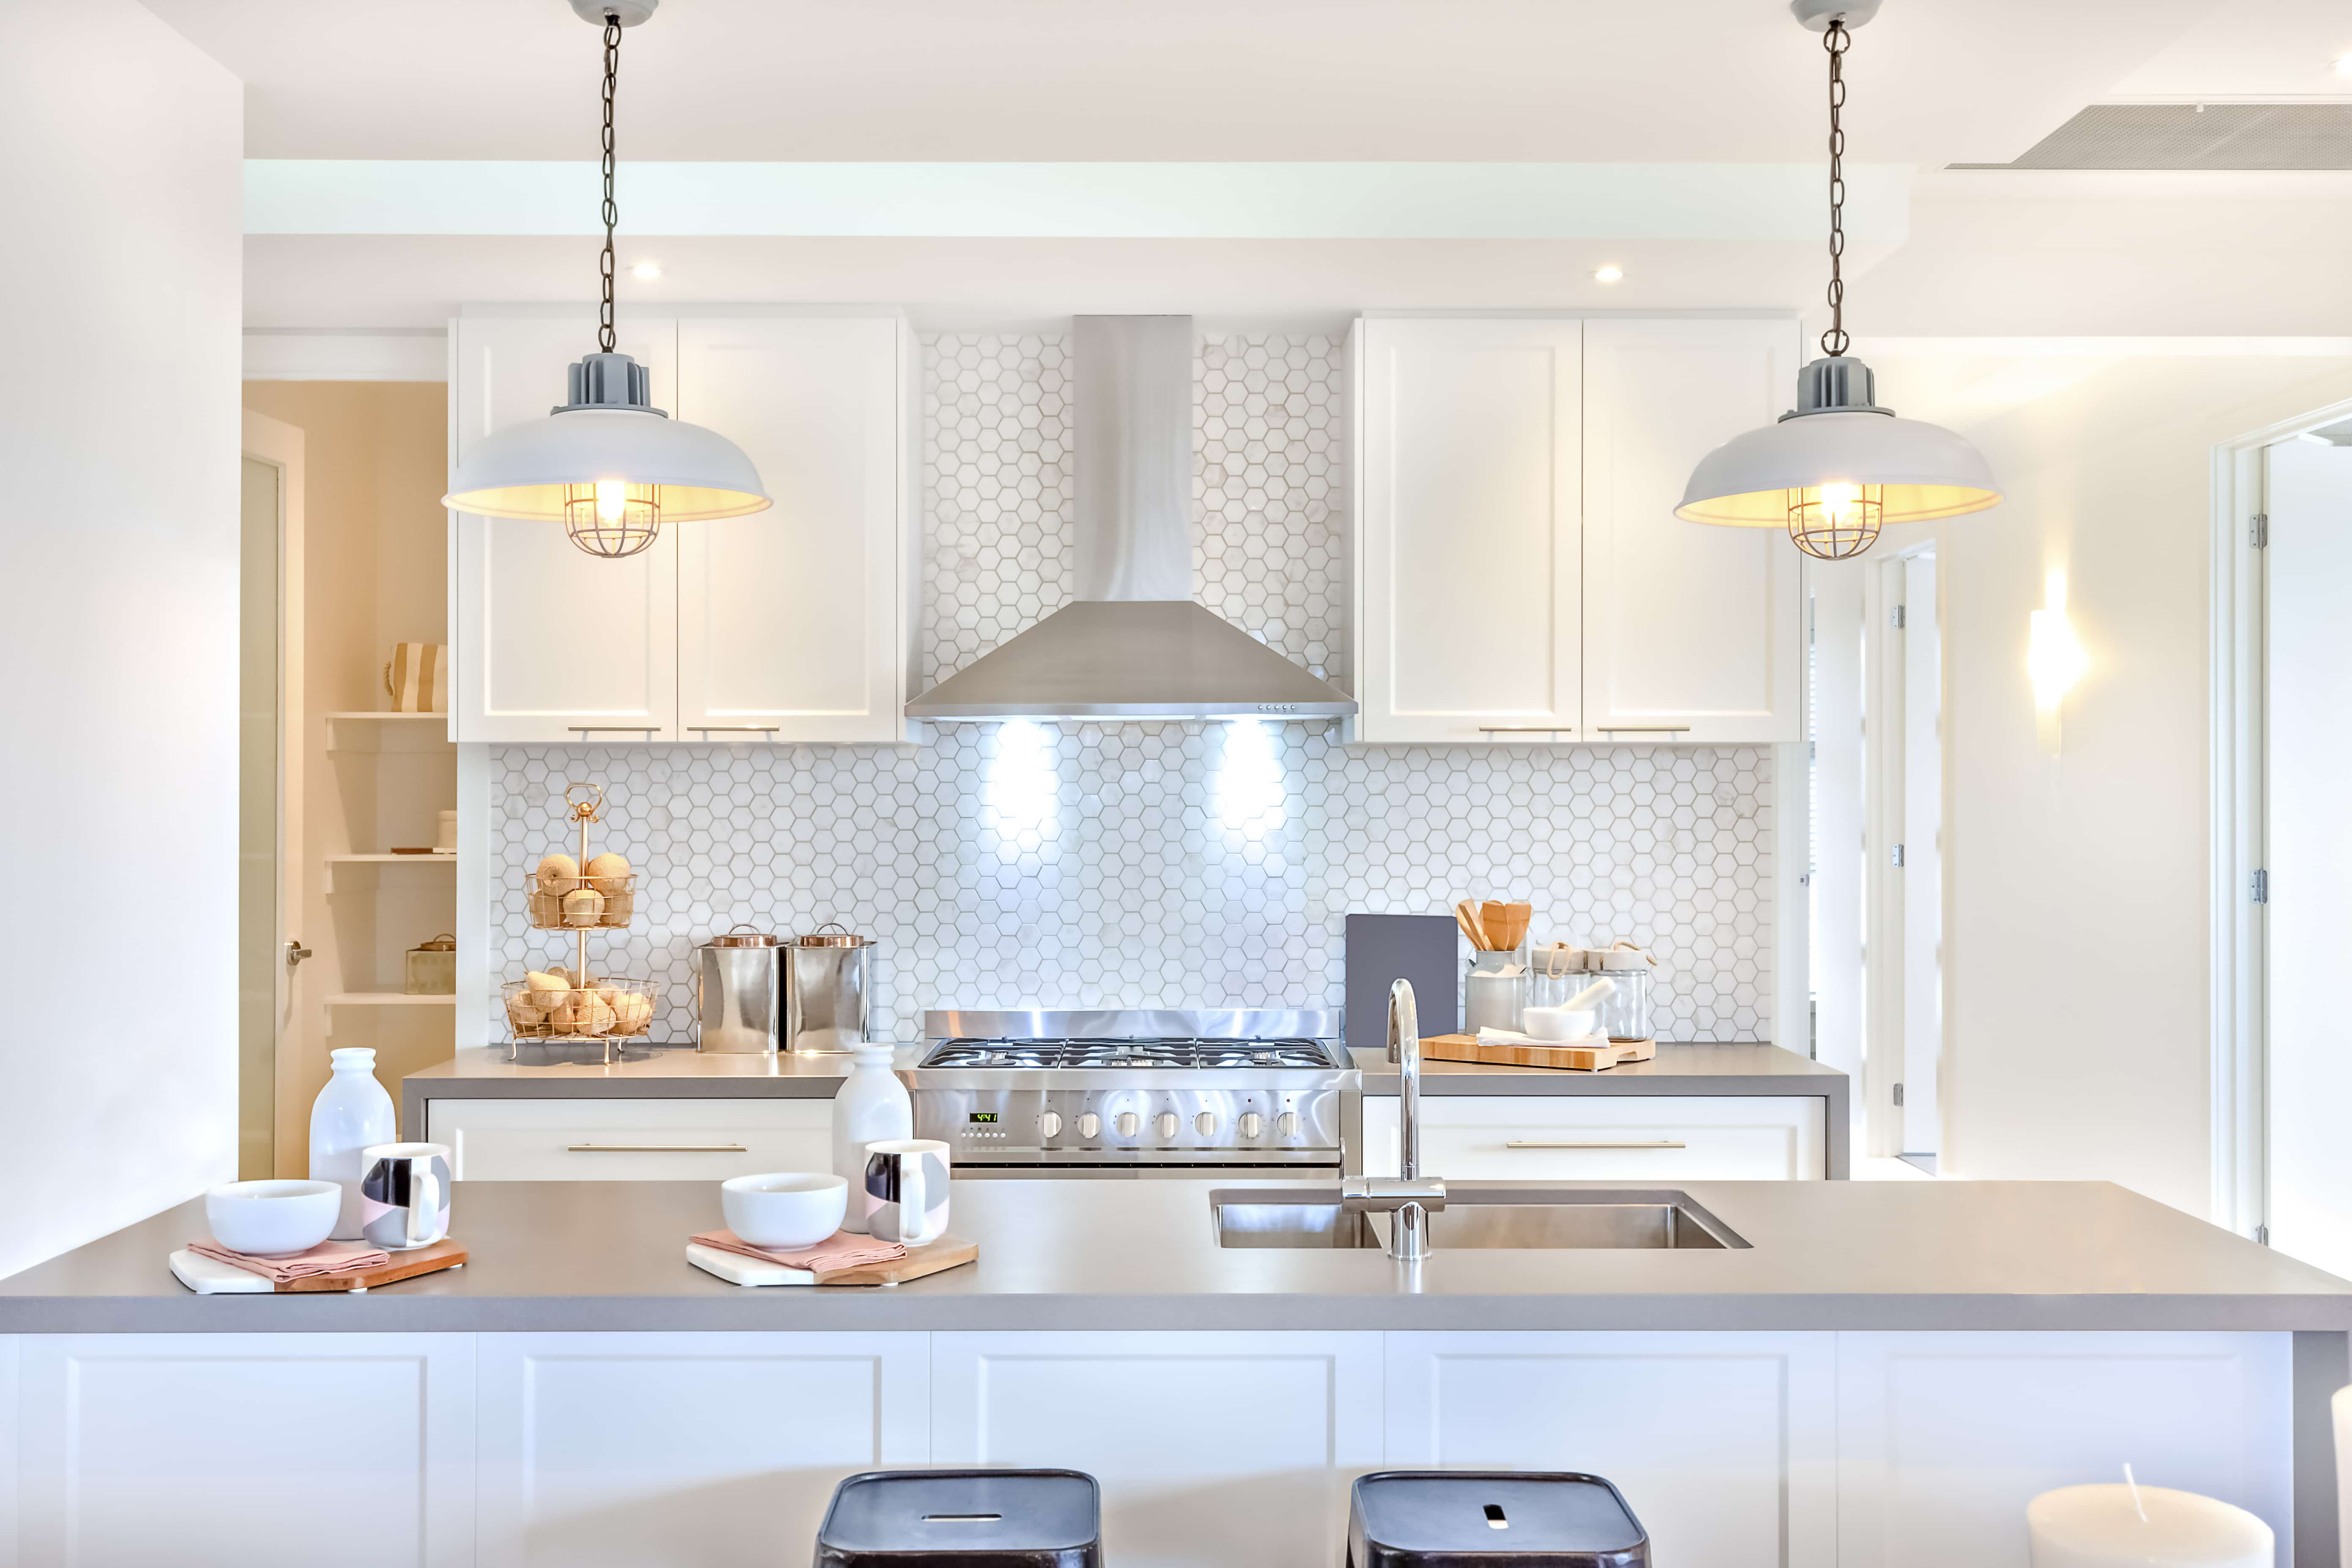 armstone - How to Modernise Your Kitchen